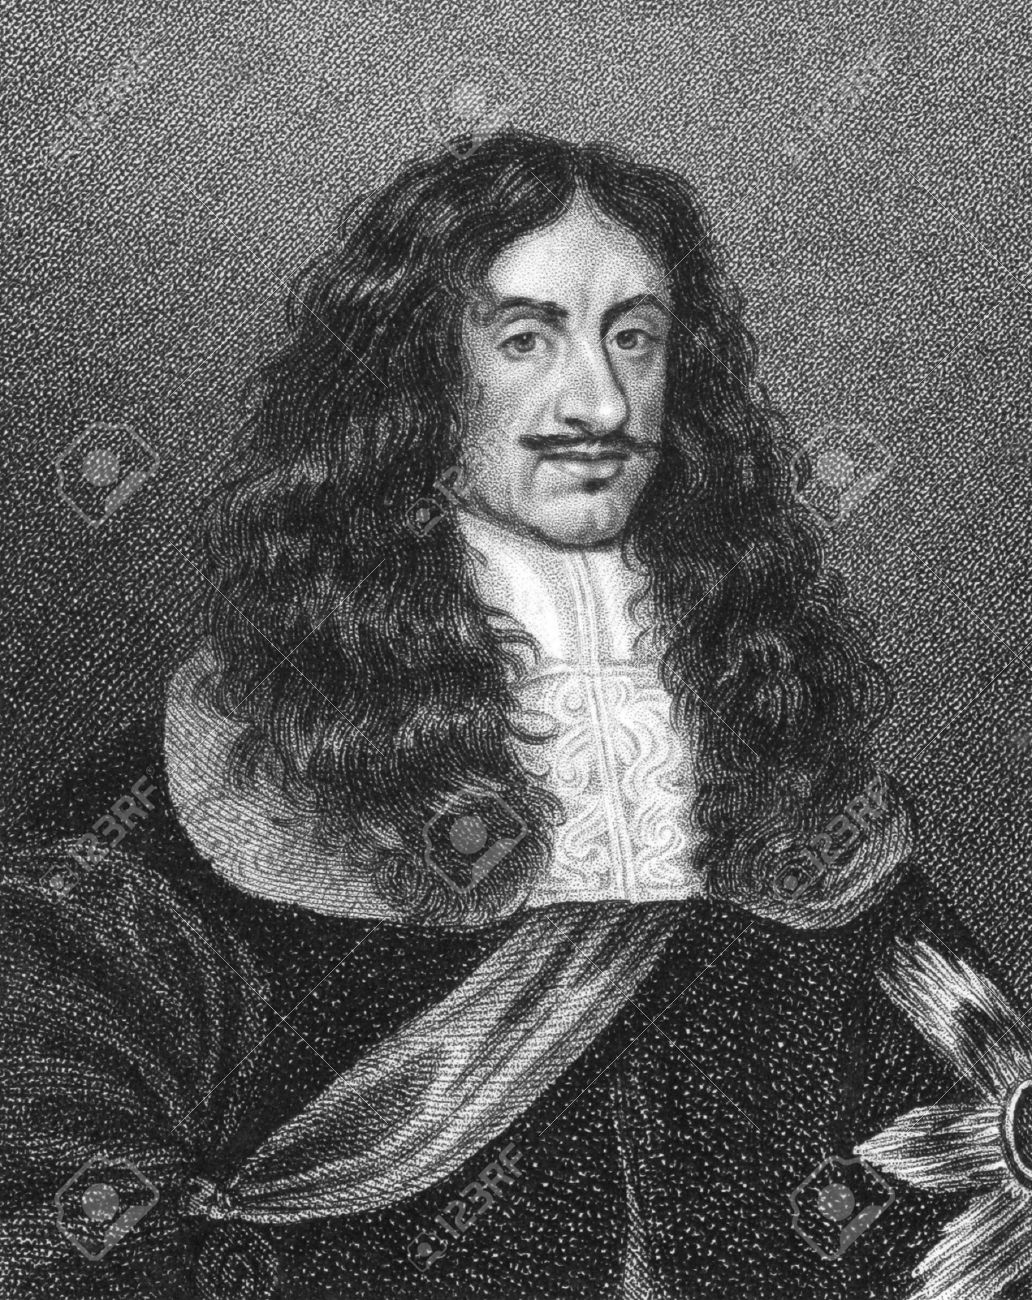 Charles II (1630-1685) on engraving from the 1800s. King of England